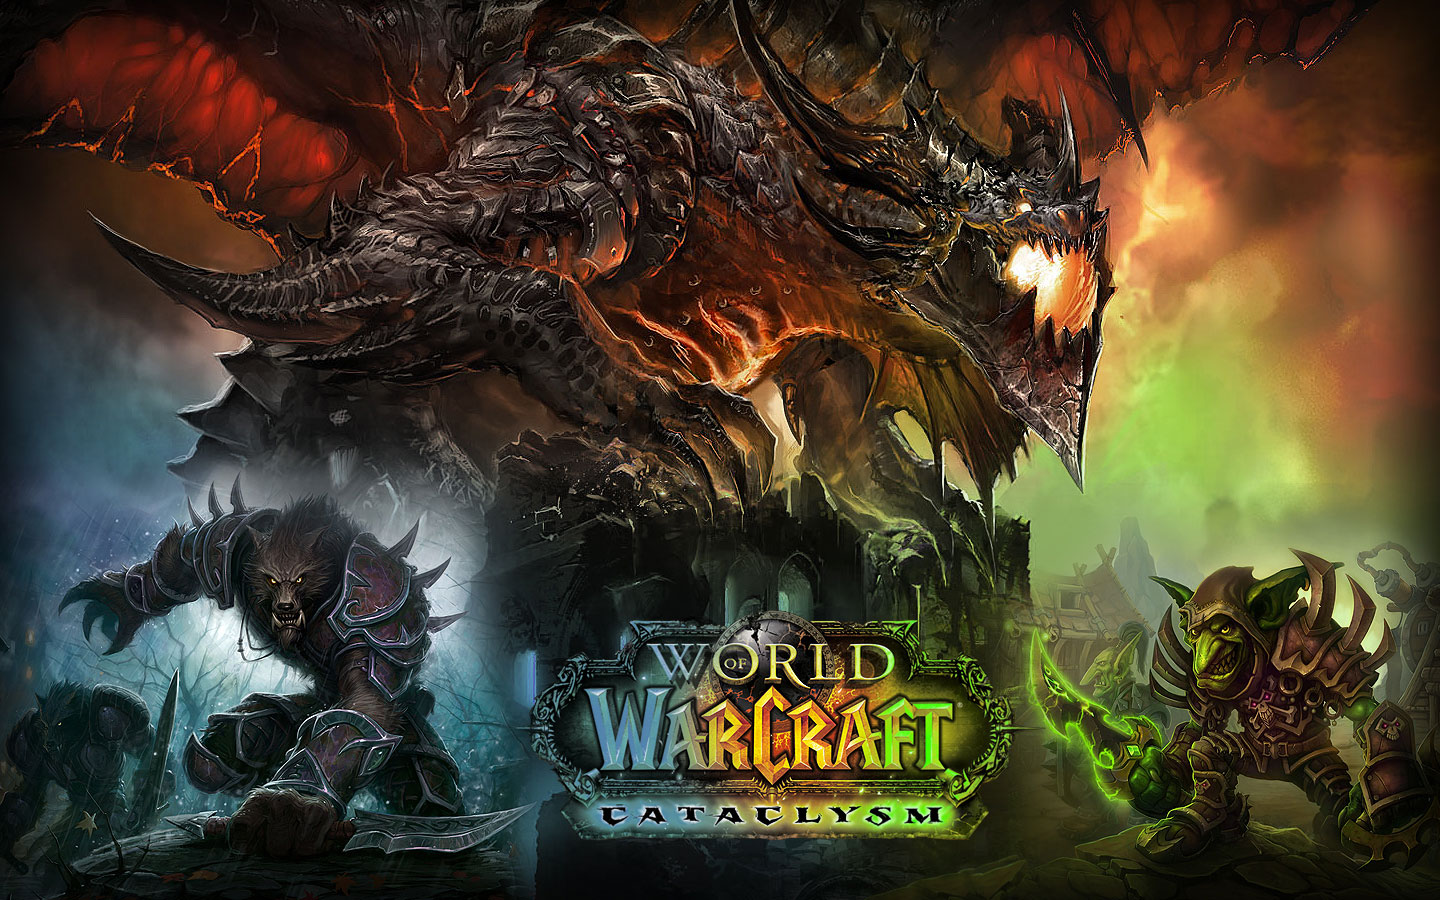 world of warcraft backgrounds A1